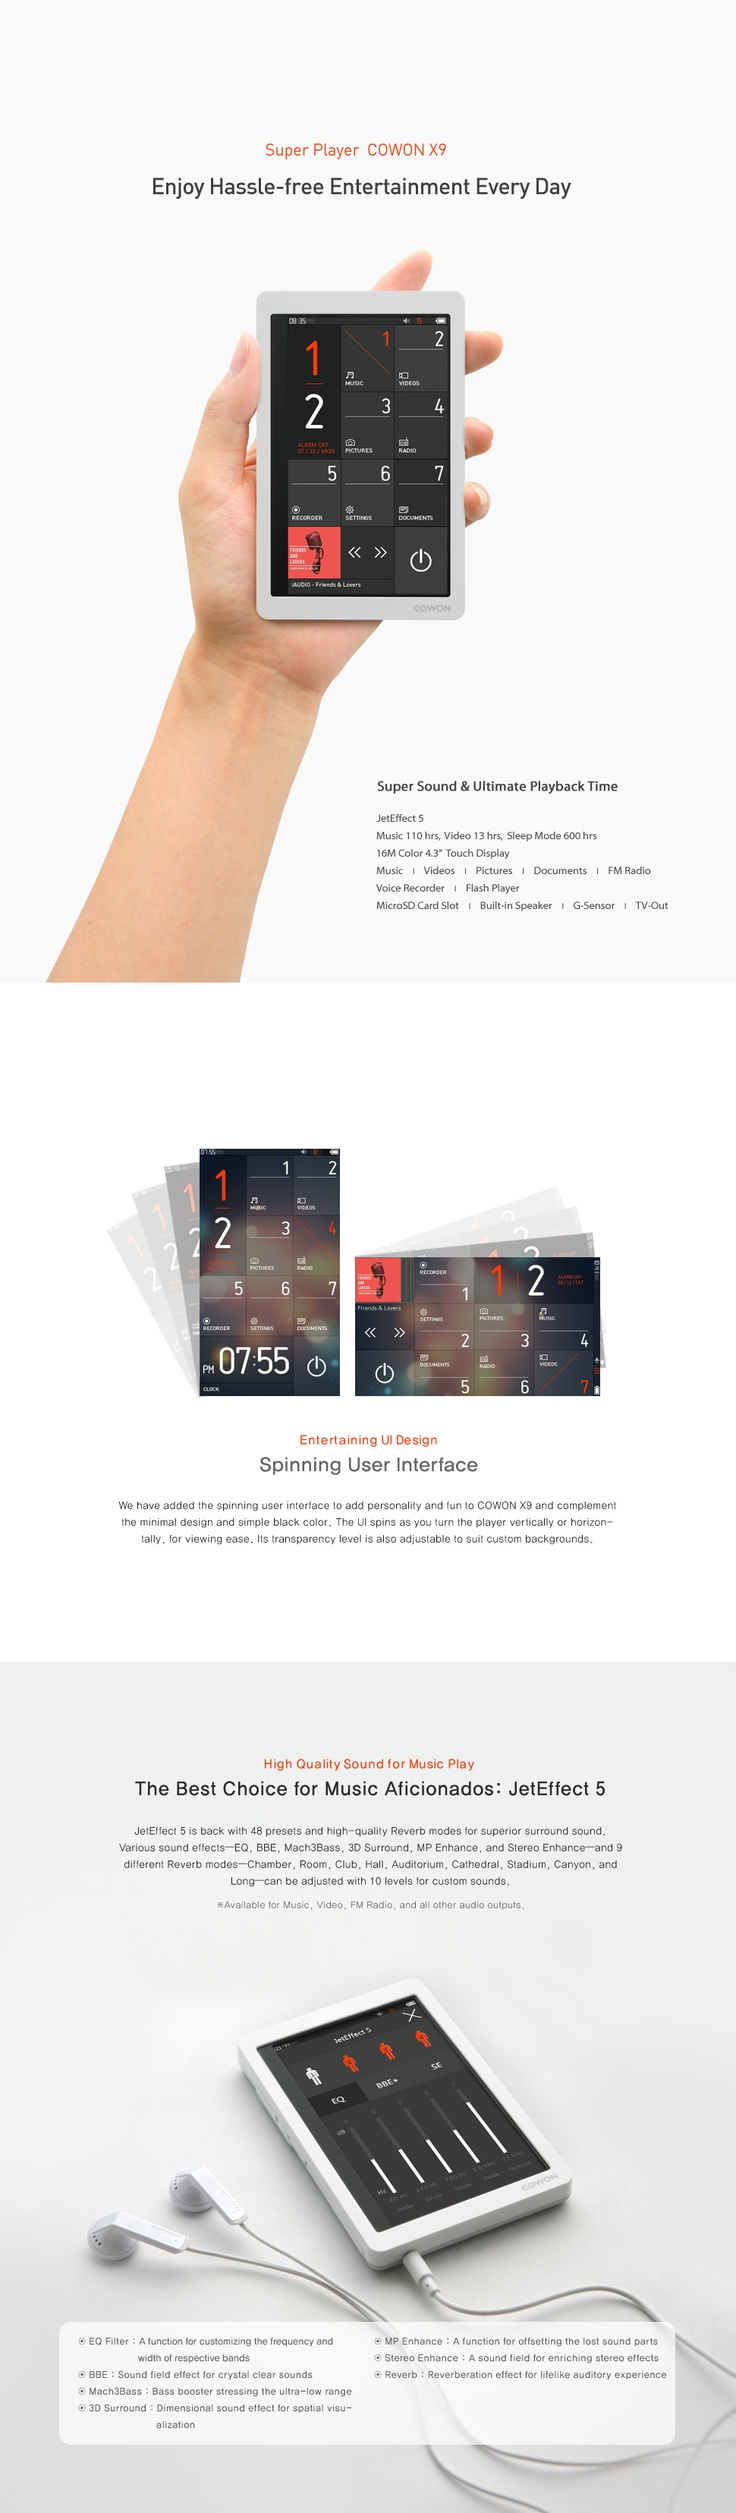 : Flats Ui, App Ios, Web Design, Design Graphics, Nice Flats, Flats Design, Ux Ui Design, Design Layout, Design Web